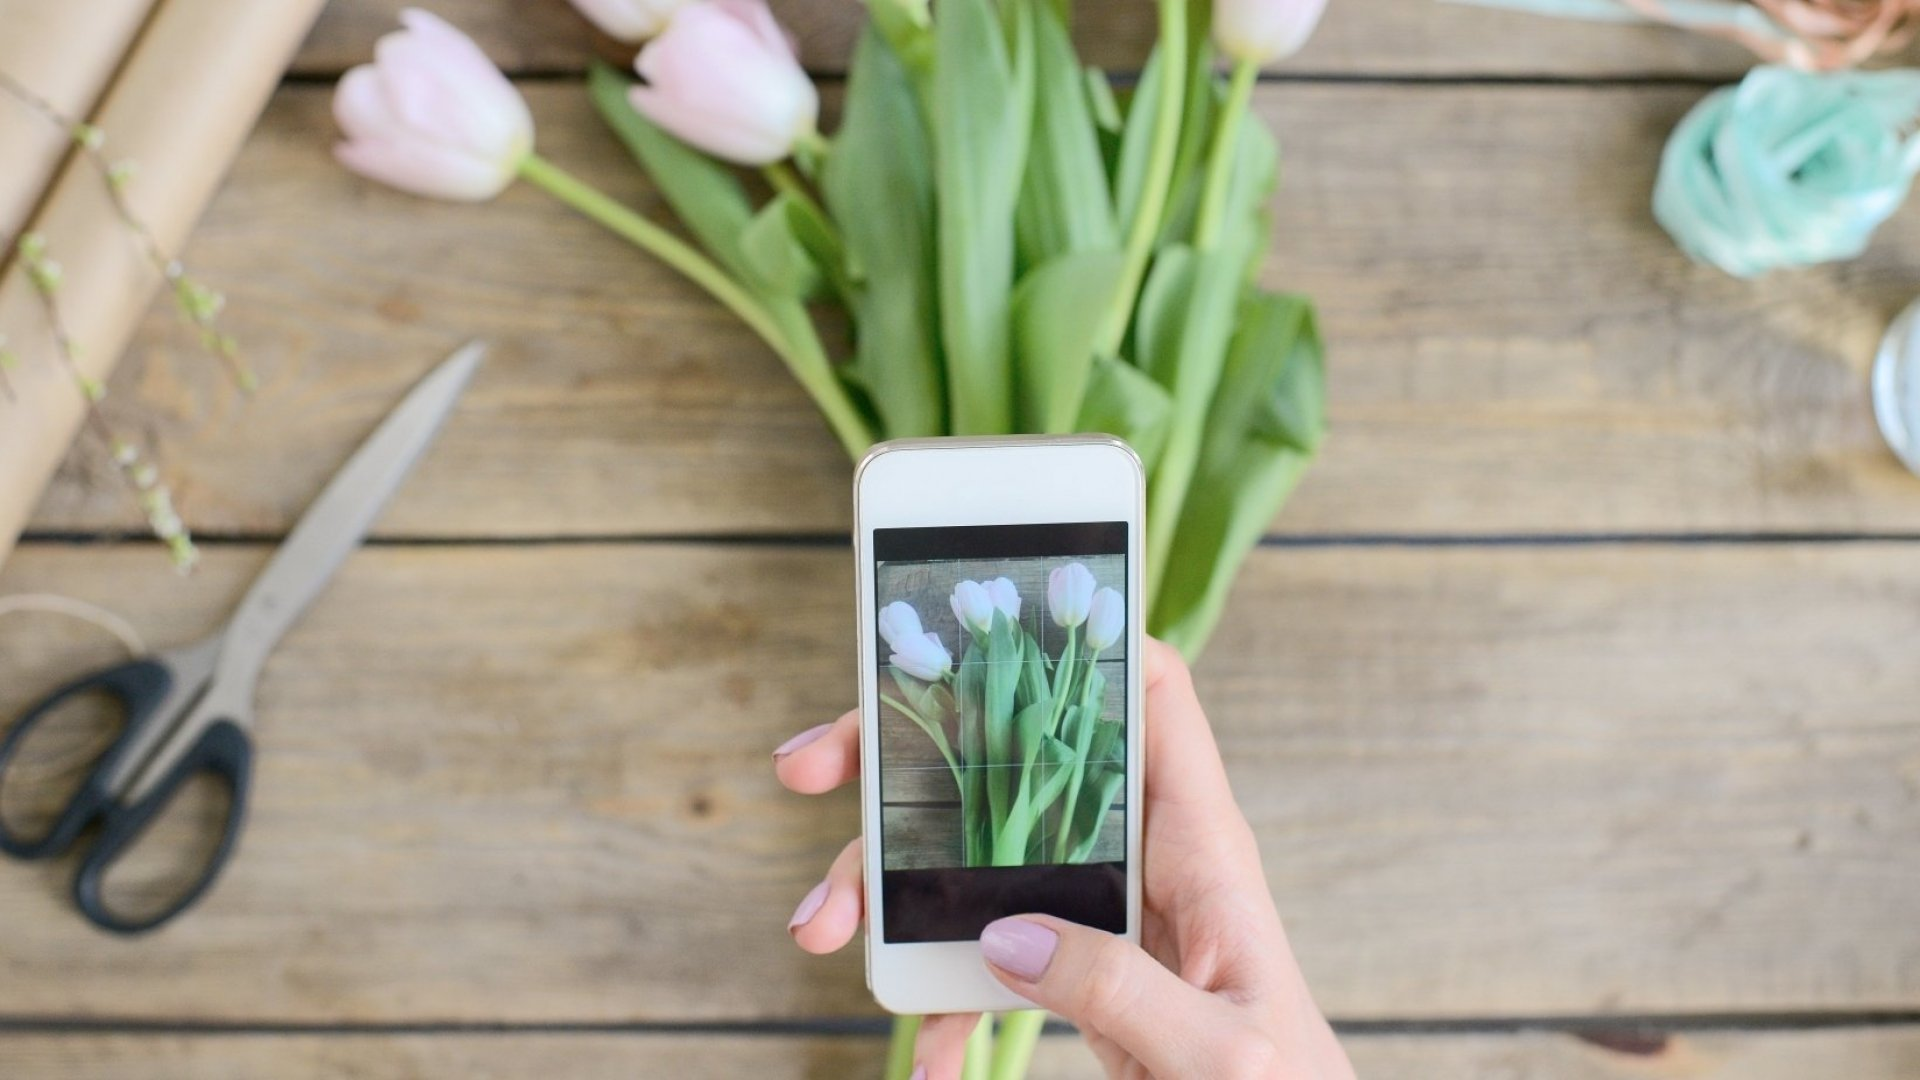 5 Ways the Smartest Businesses Use Instagram Marketing